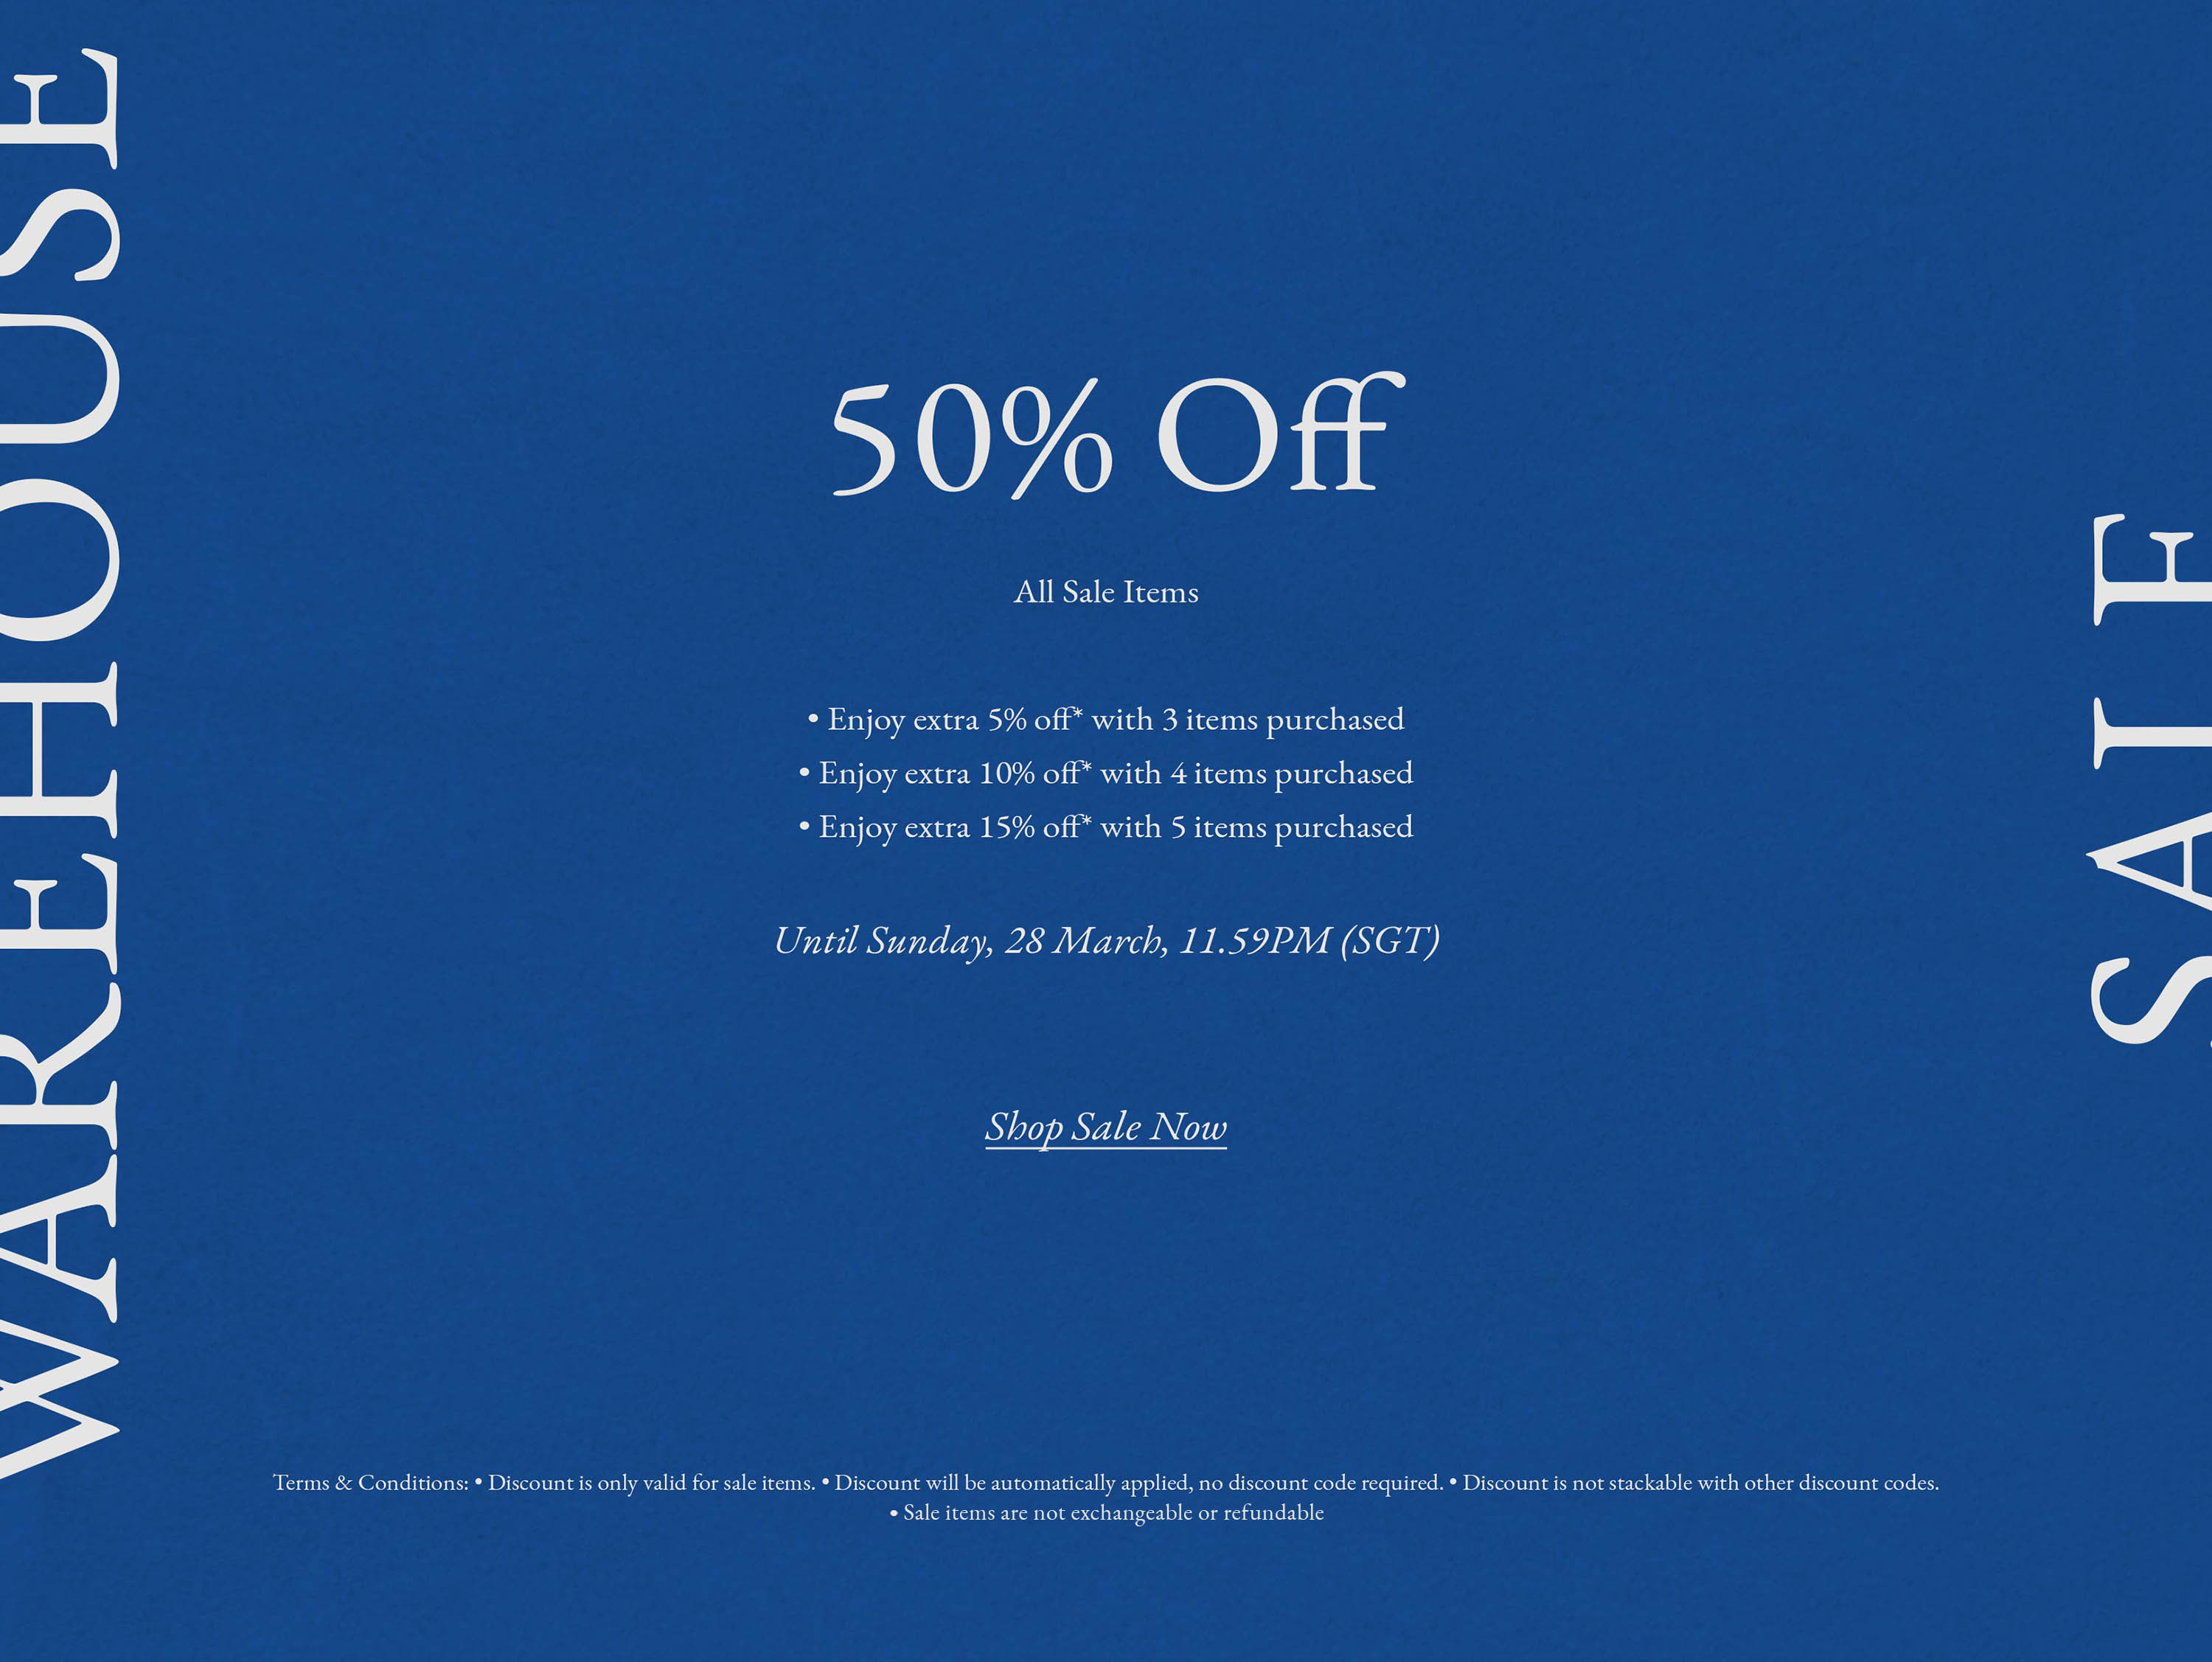 Warehouse Sale. 50% Off All Sale Items. Until Sunday, 28 Mar, 11.59PM (SGT)